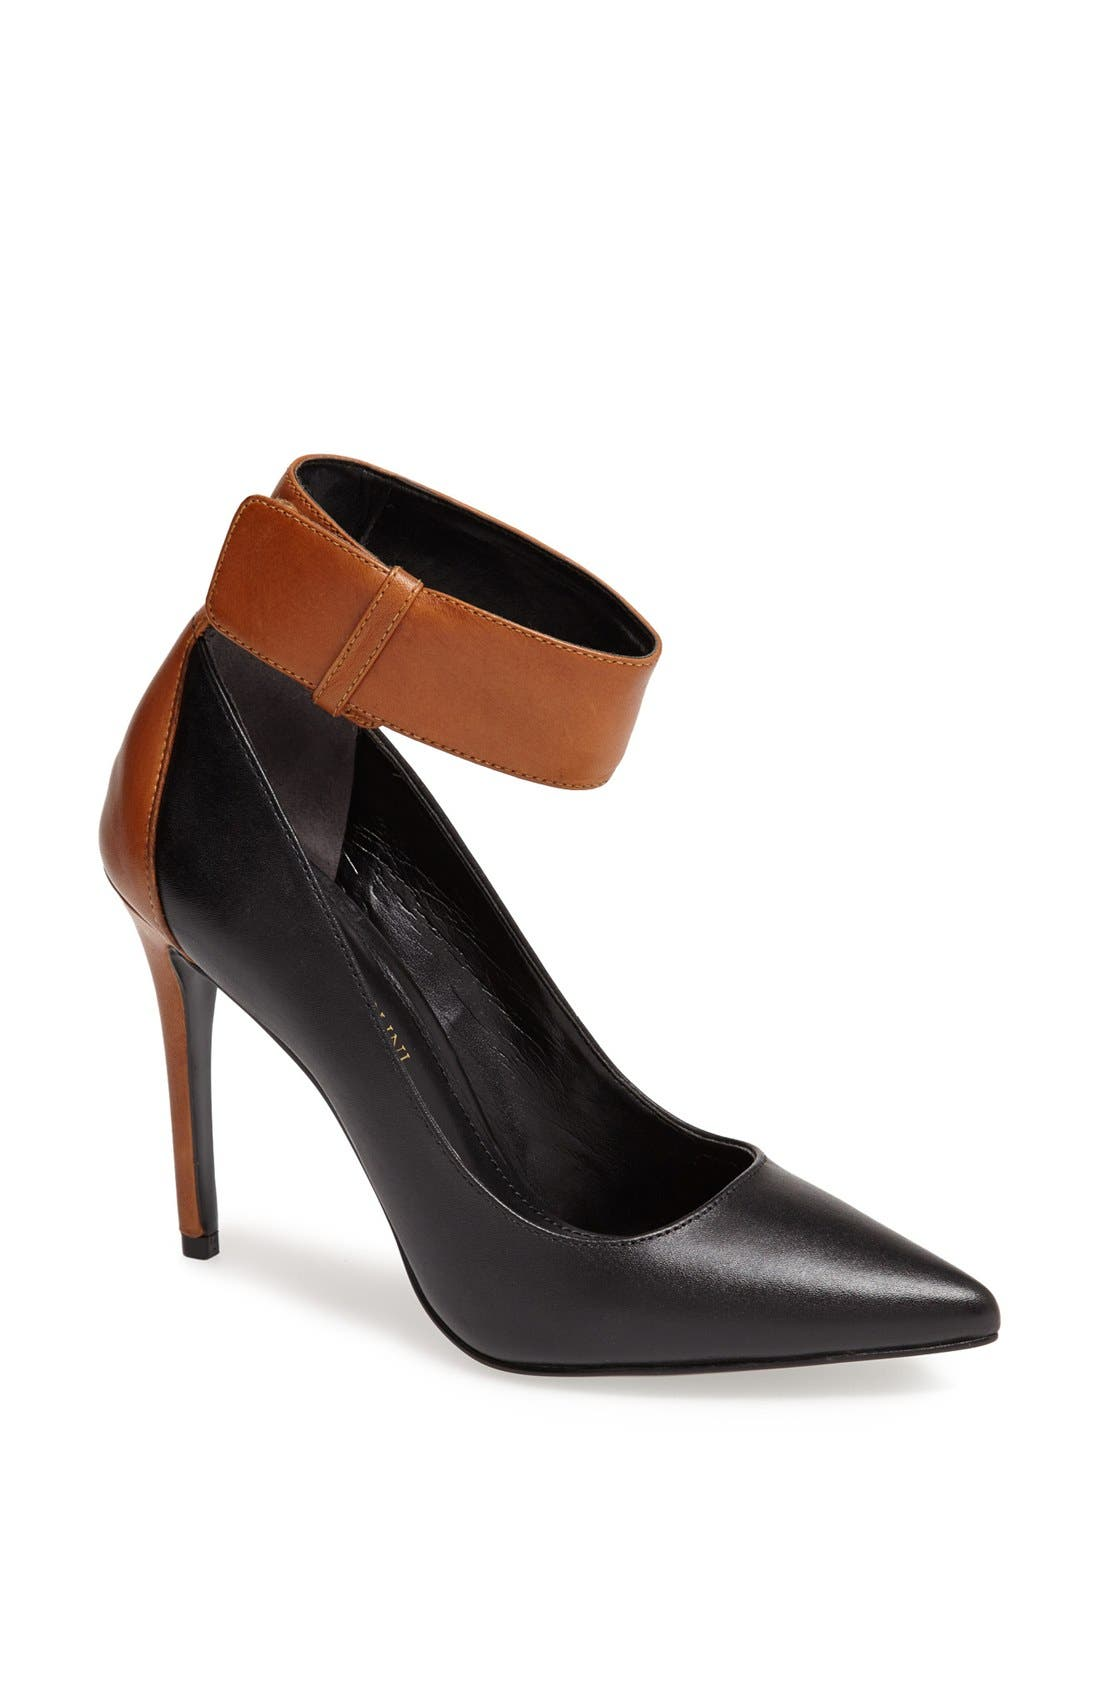 Alternate Image 1 Selected - Enzo Angiolini 'Fastir' Leather Pump